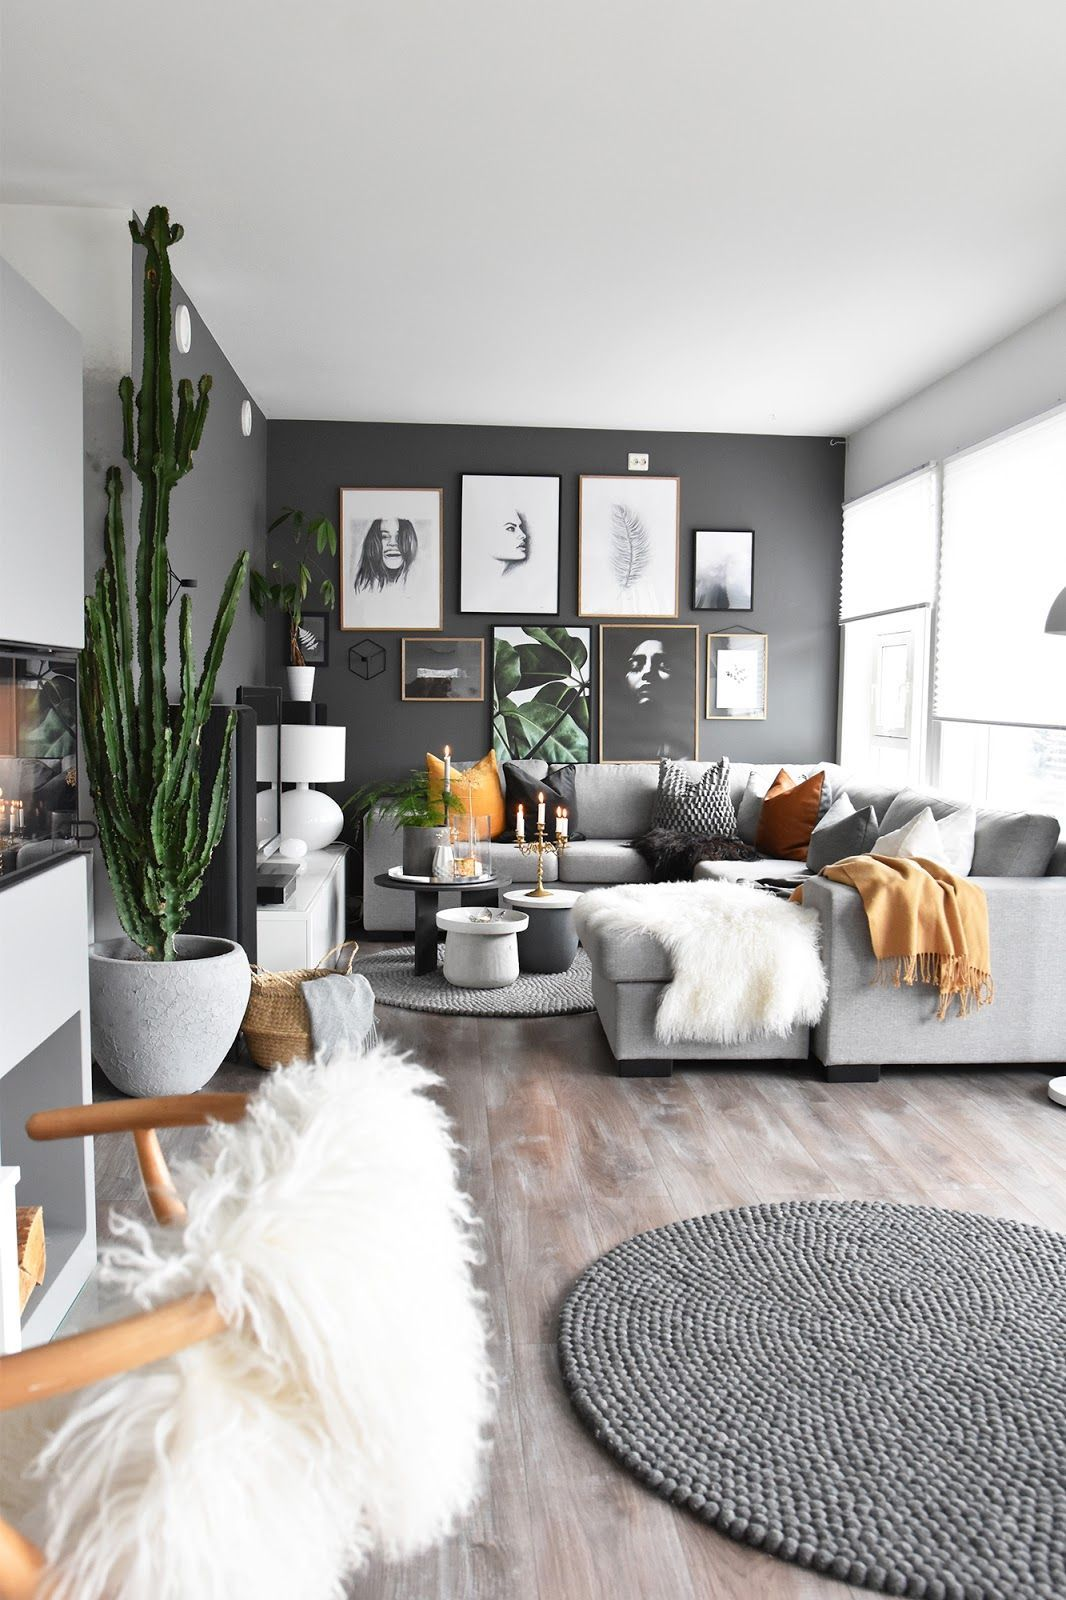 We have assembled our favorite small living room ideas to help make